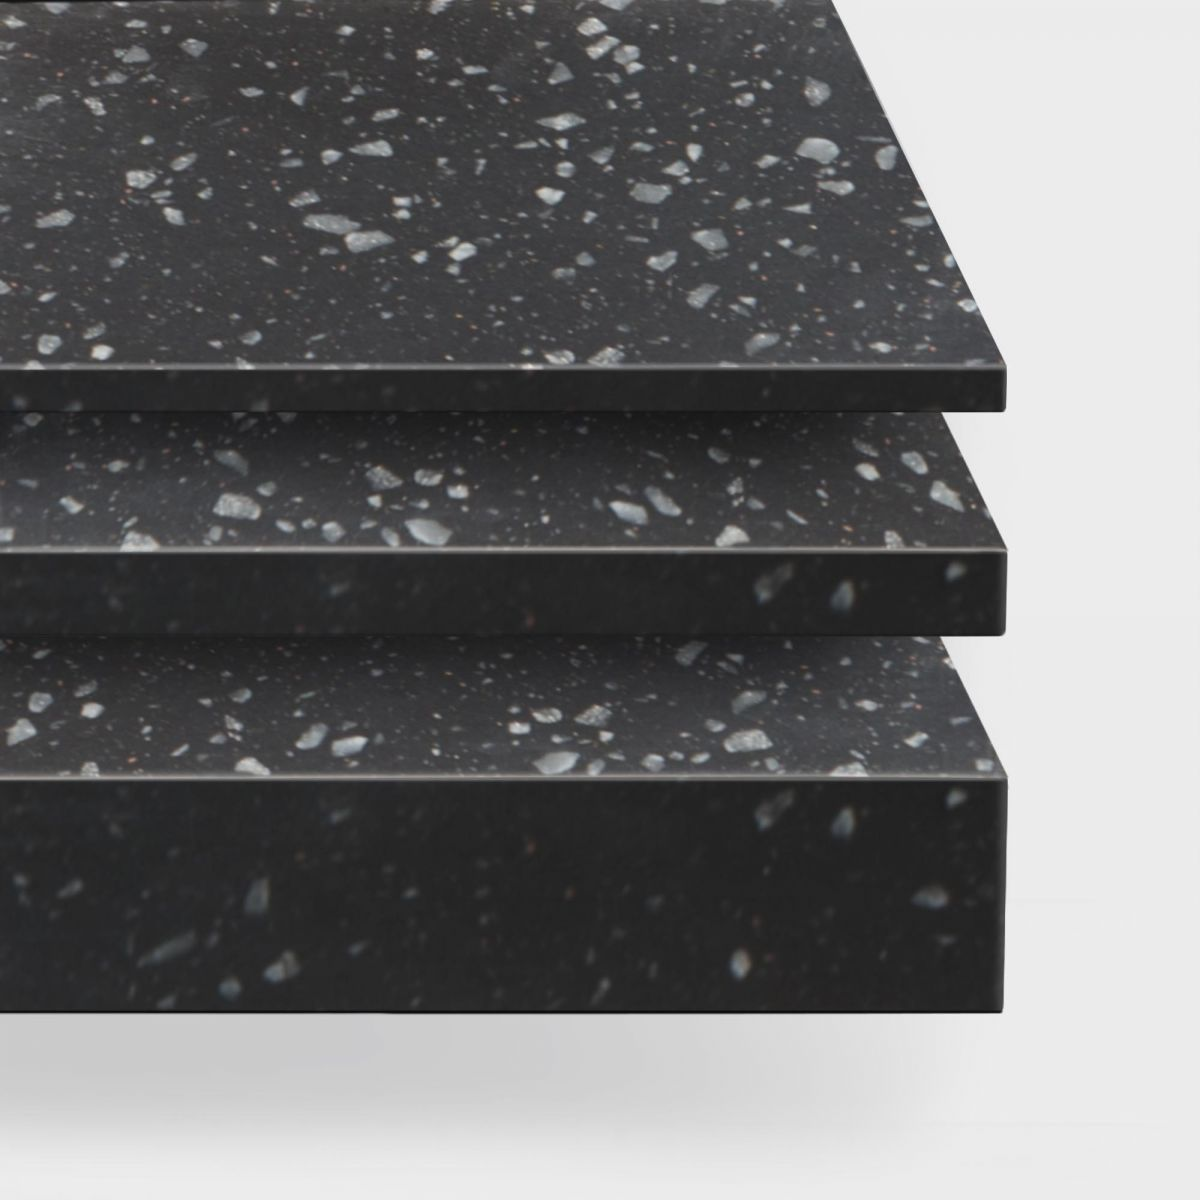 Black Granite Kordura Tops